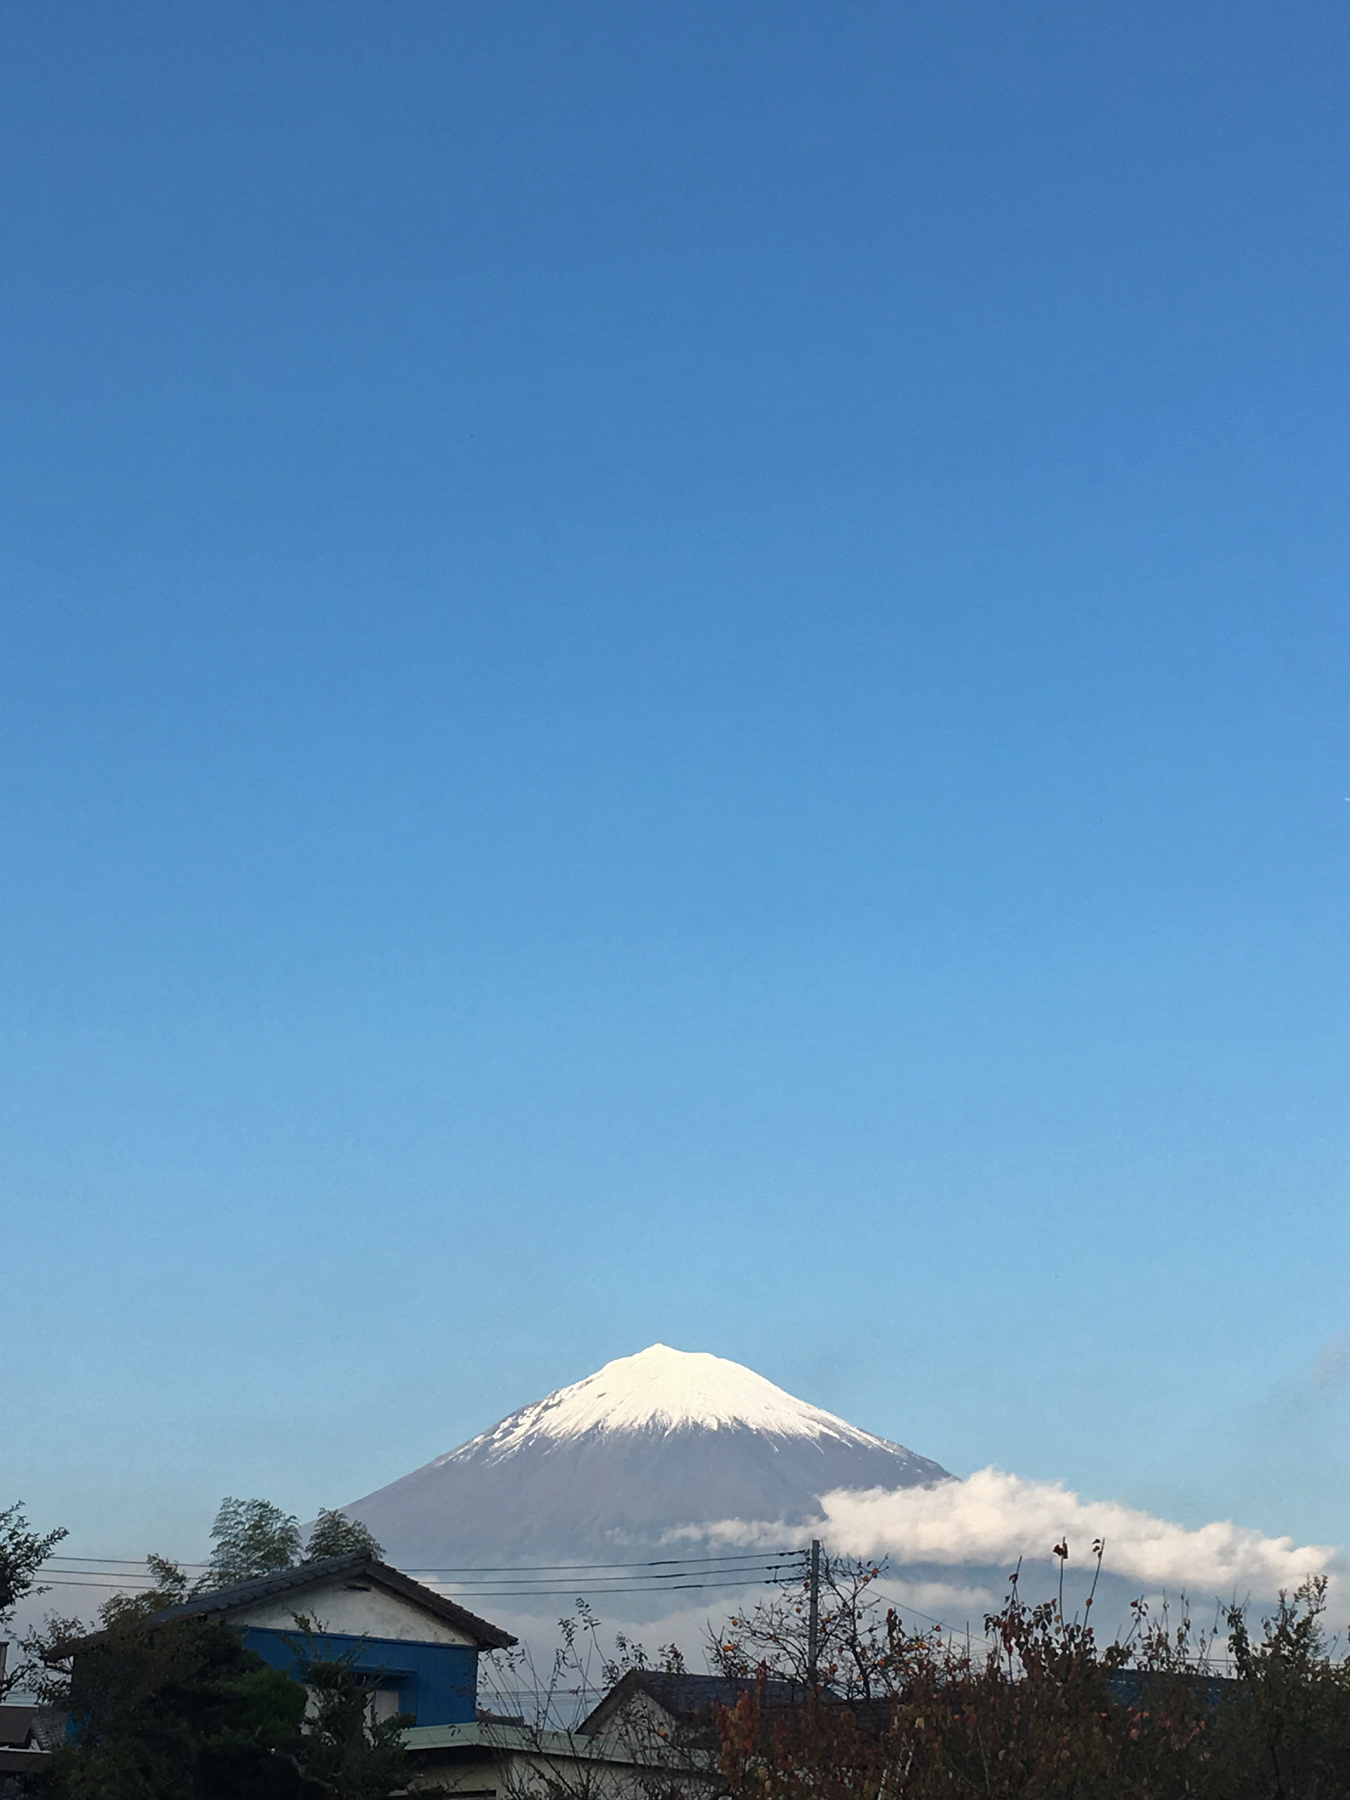 One and only, Mt. Fuji